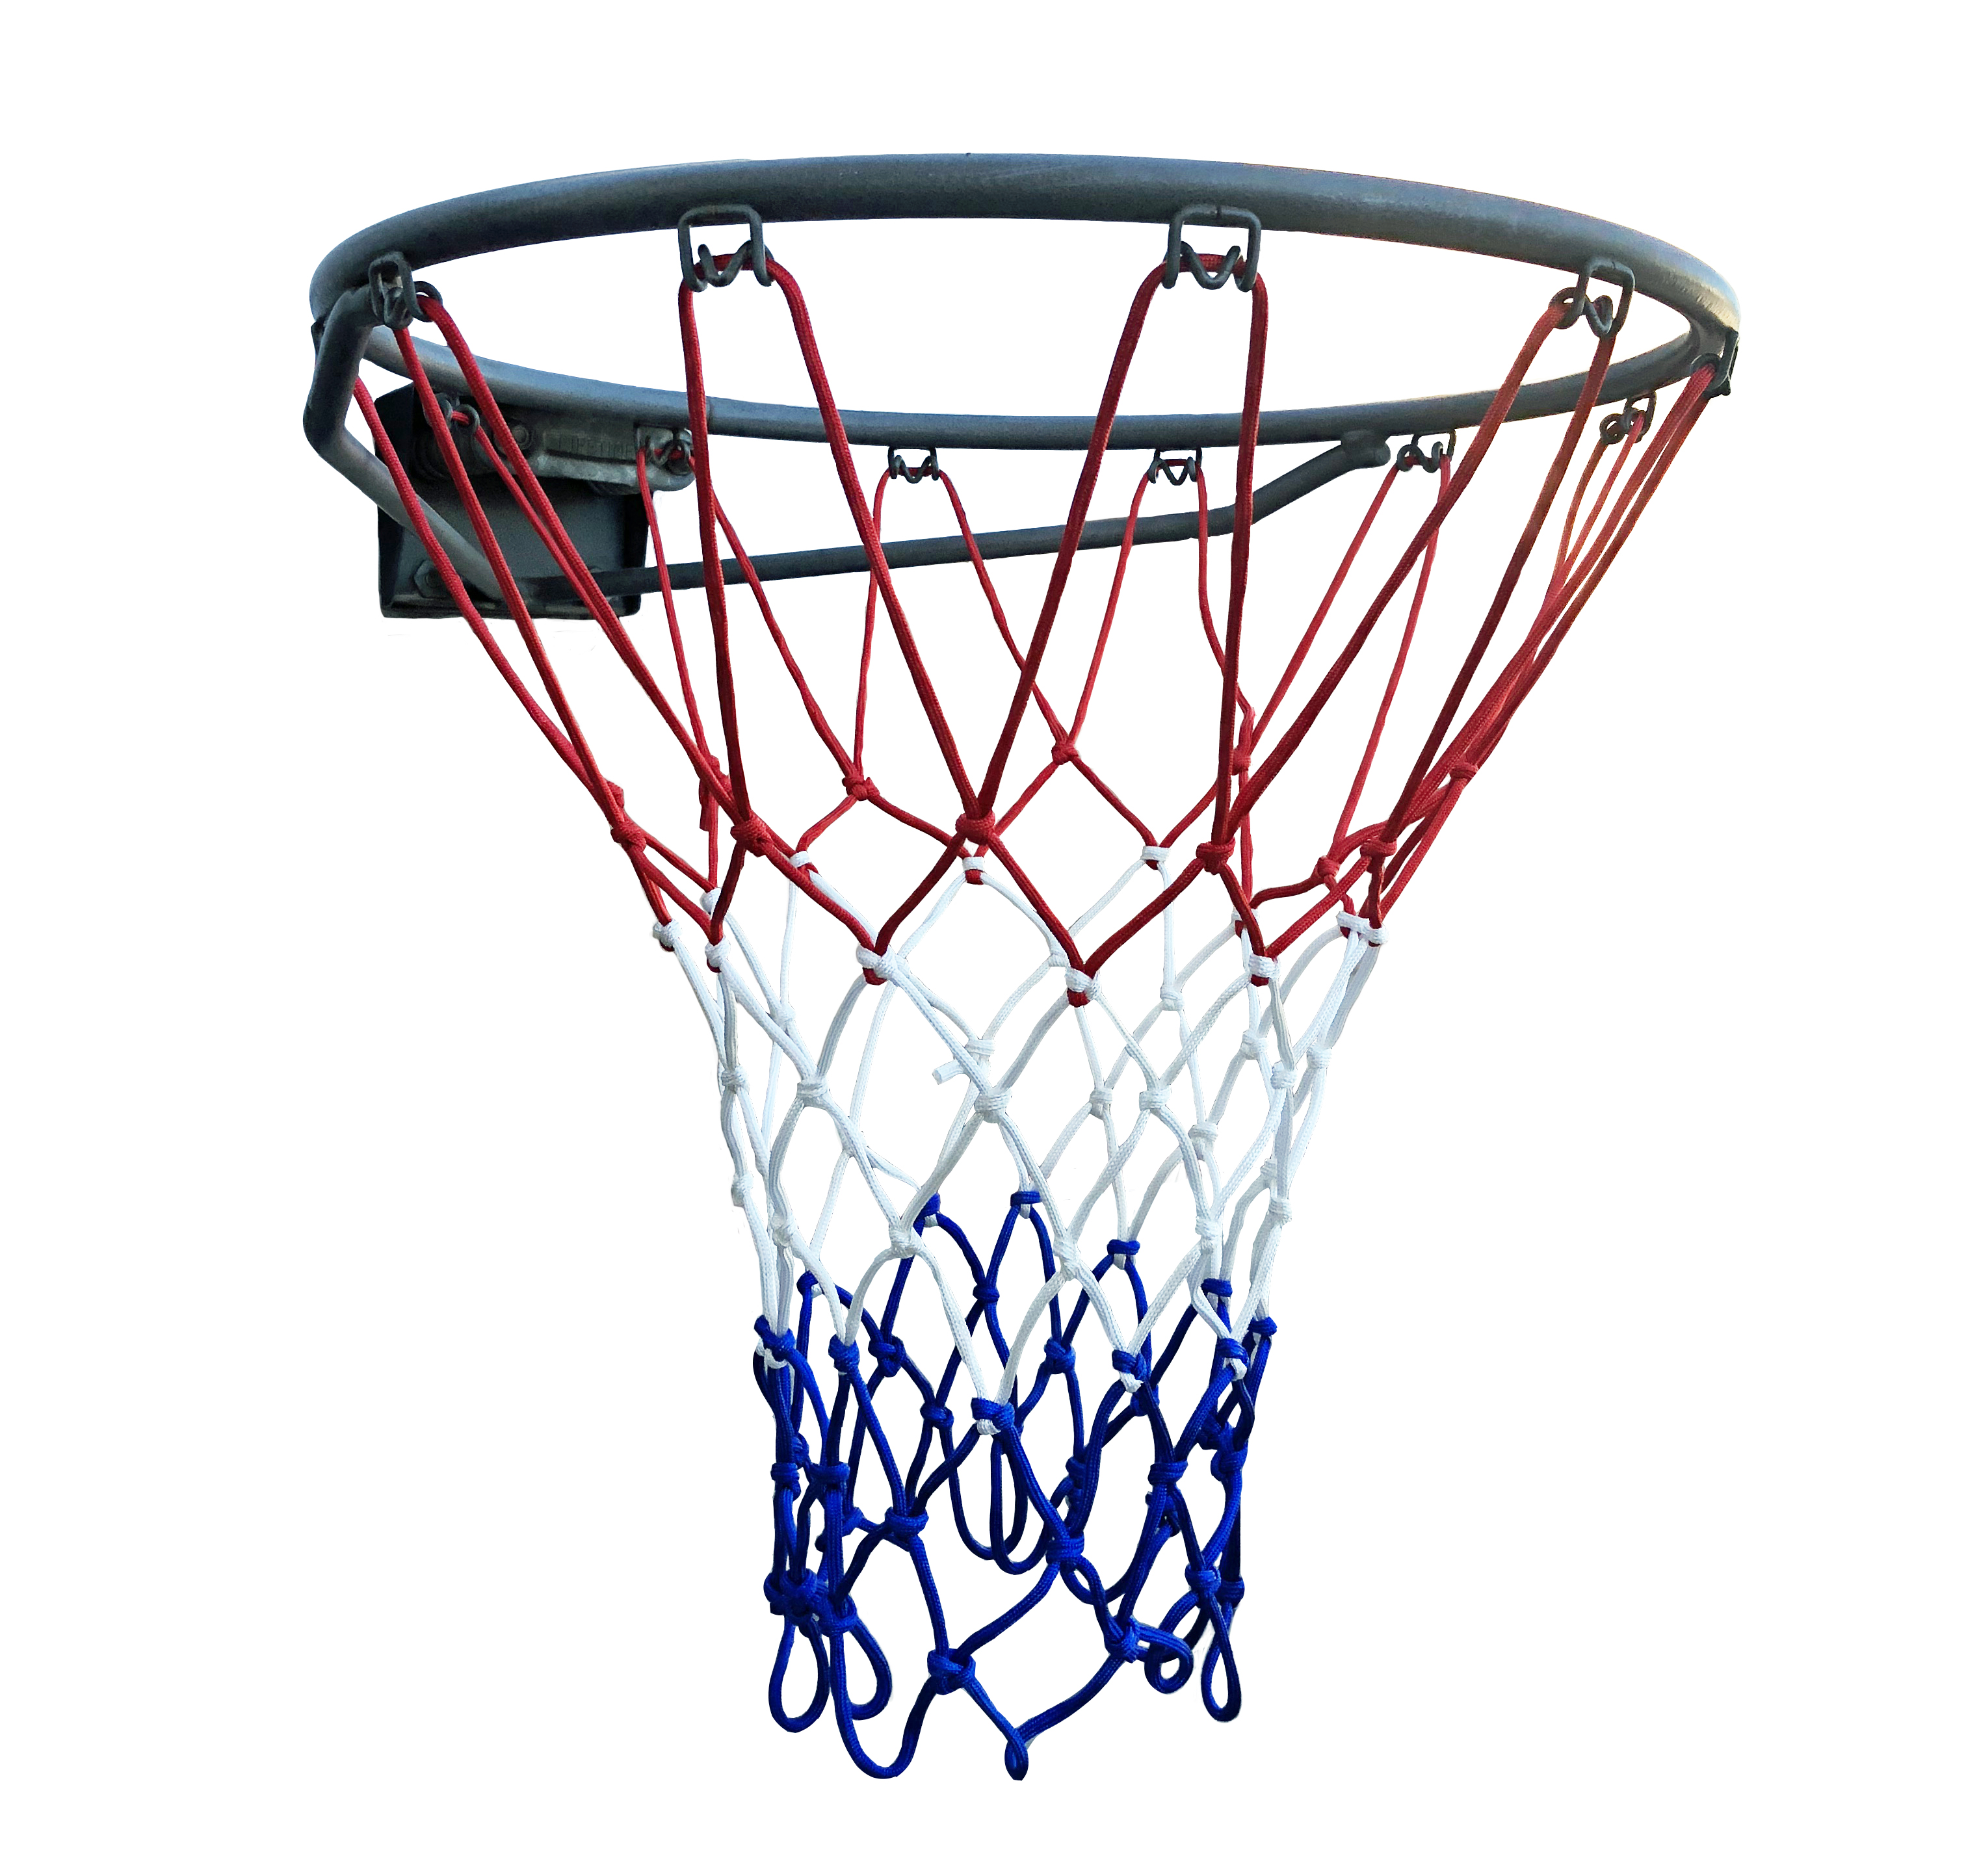 CSI Cannon Sports Nylon Basketball Net - Red/White/Blue